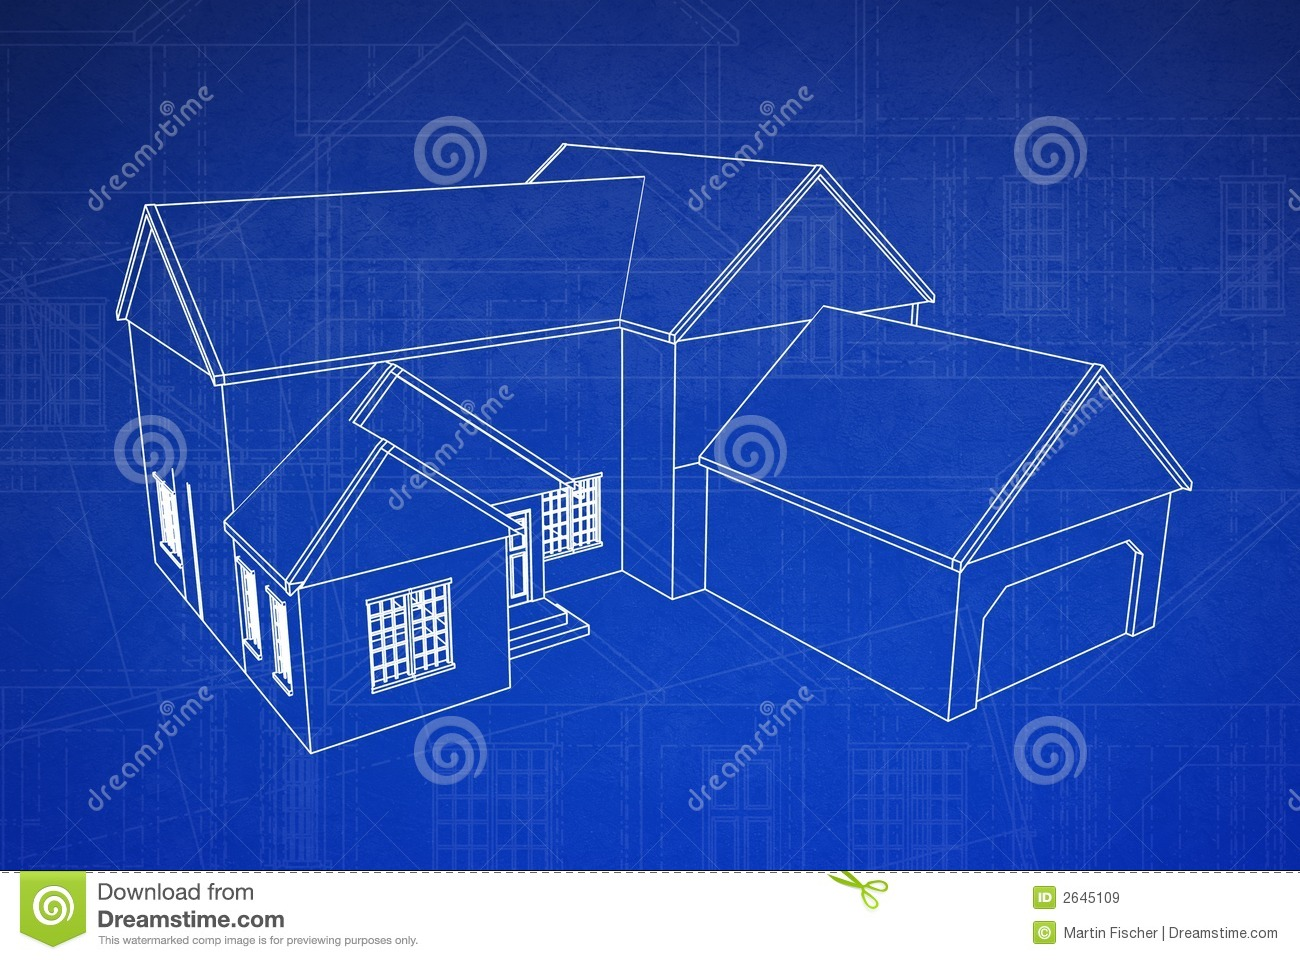 Http Www Dreamstime Com Royalty Free Stock Images 3d House Blueprint Image2645109